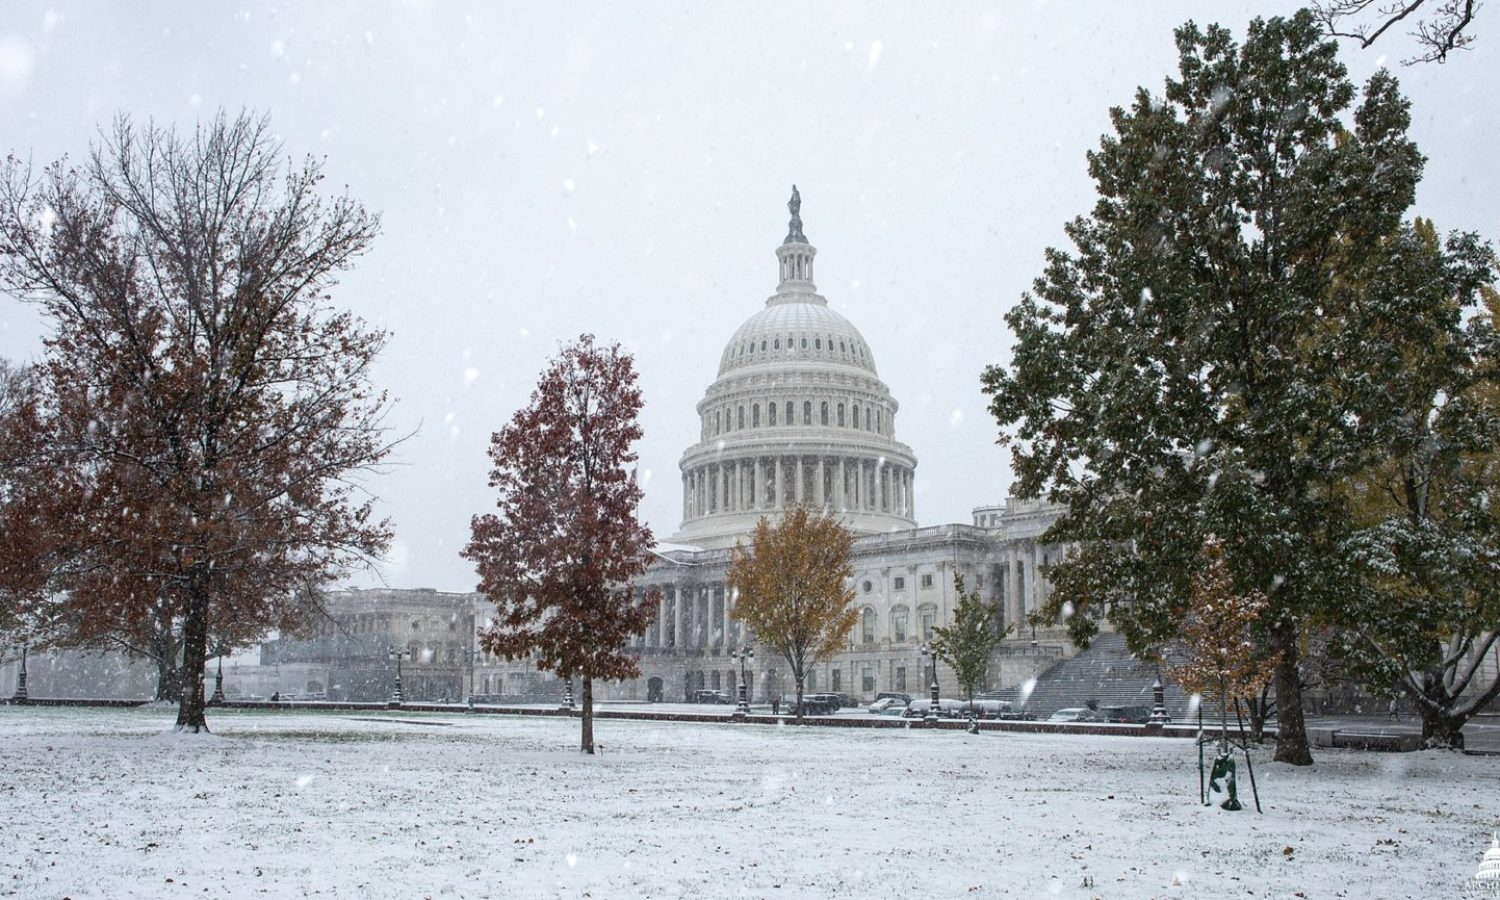 US_Capitol_Building_Congress_Winter_Snow